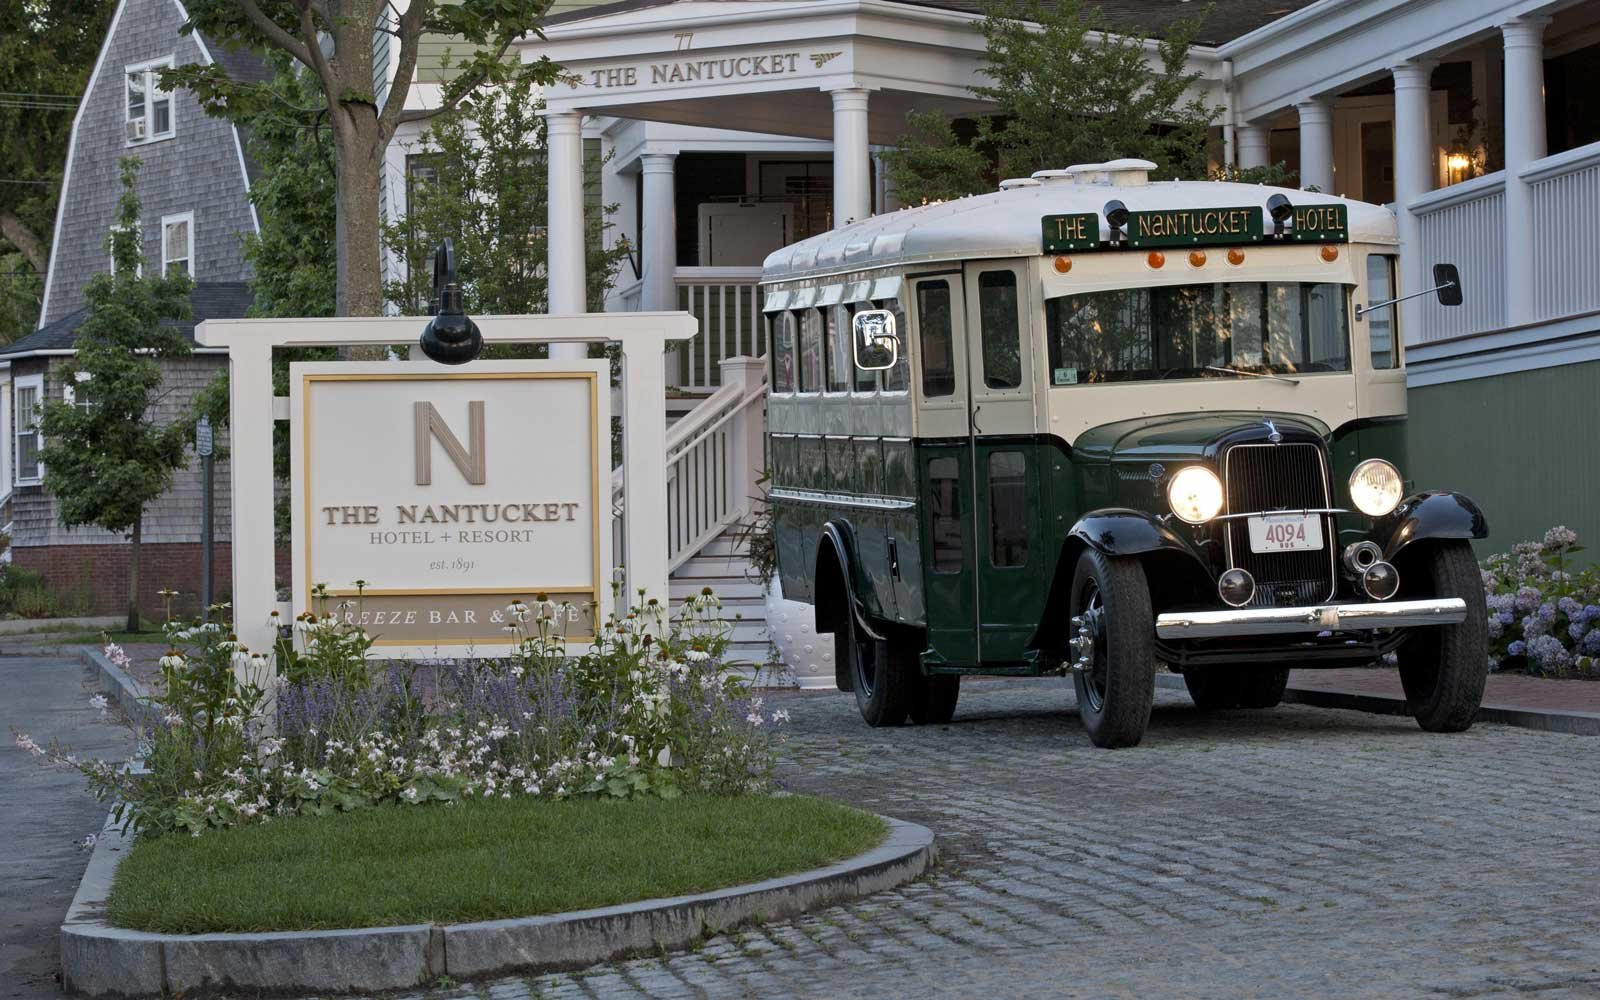 Entrance of the Nantucket Hotel